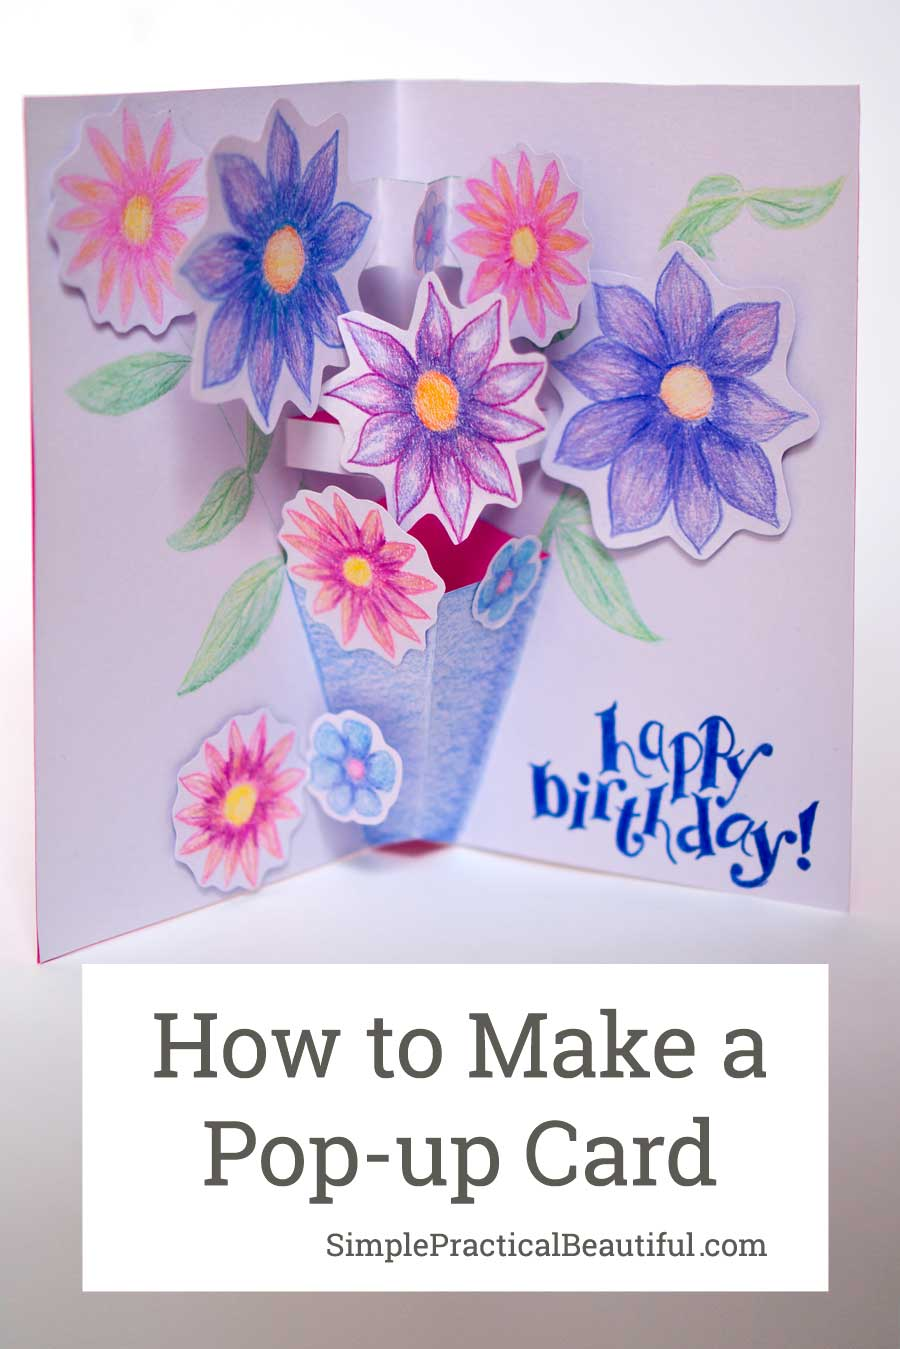 pop up birthday cards for mom - how to make a pop up card inspired by paddington 2